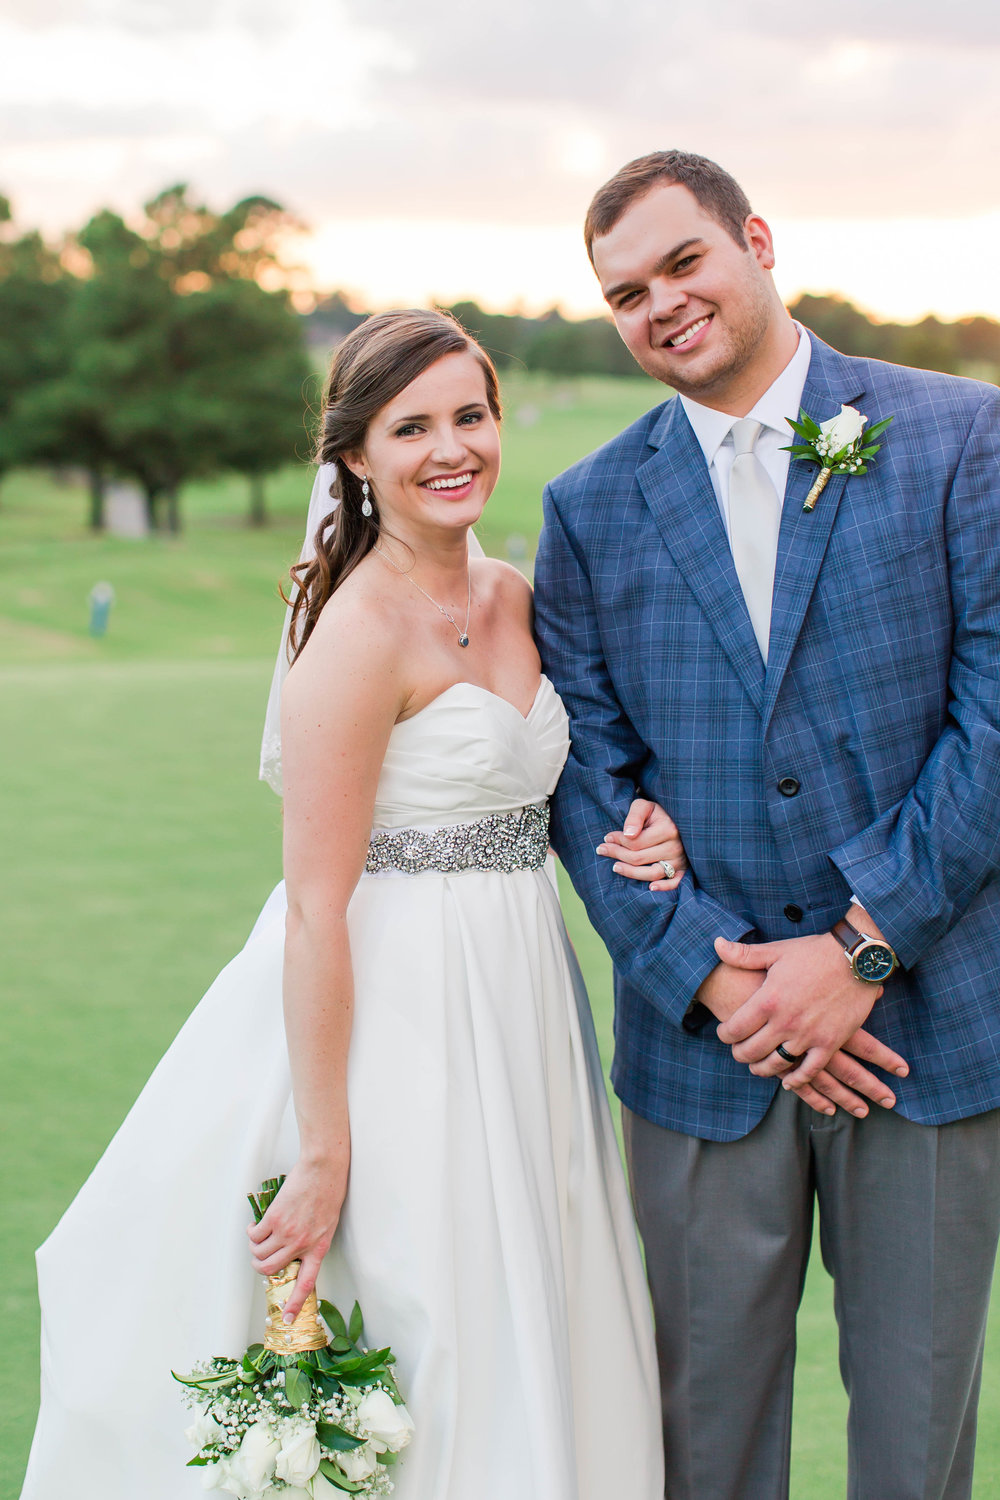 Hollomans_Bride and Groom_102.jpg